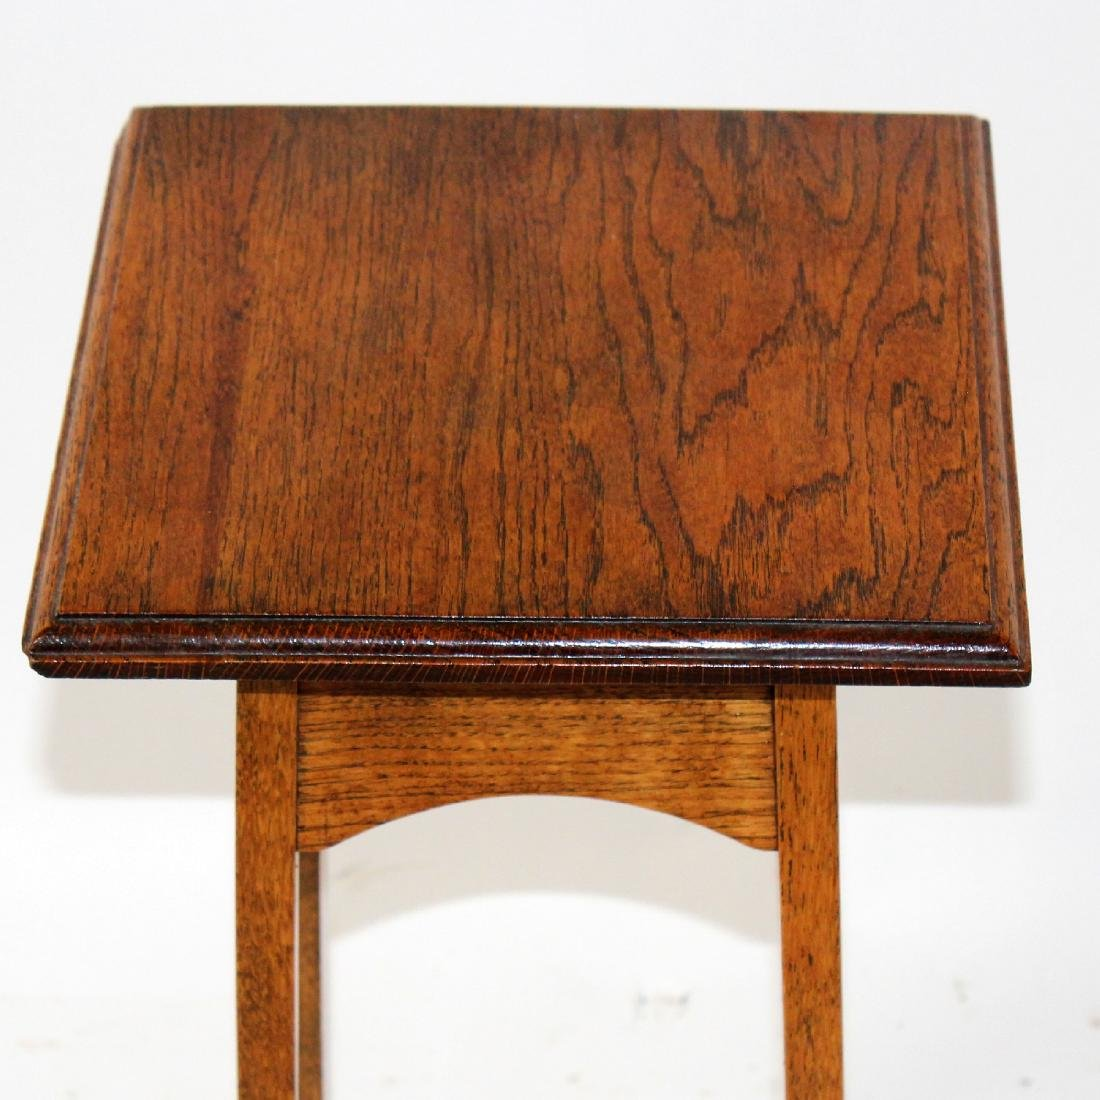 Oak mission style plant stand - 3